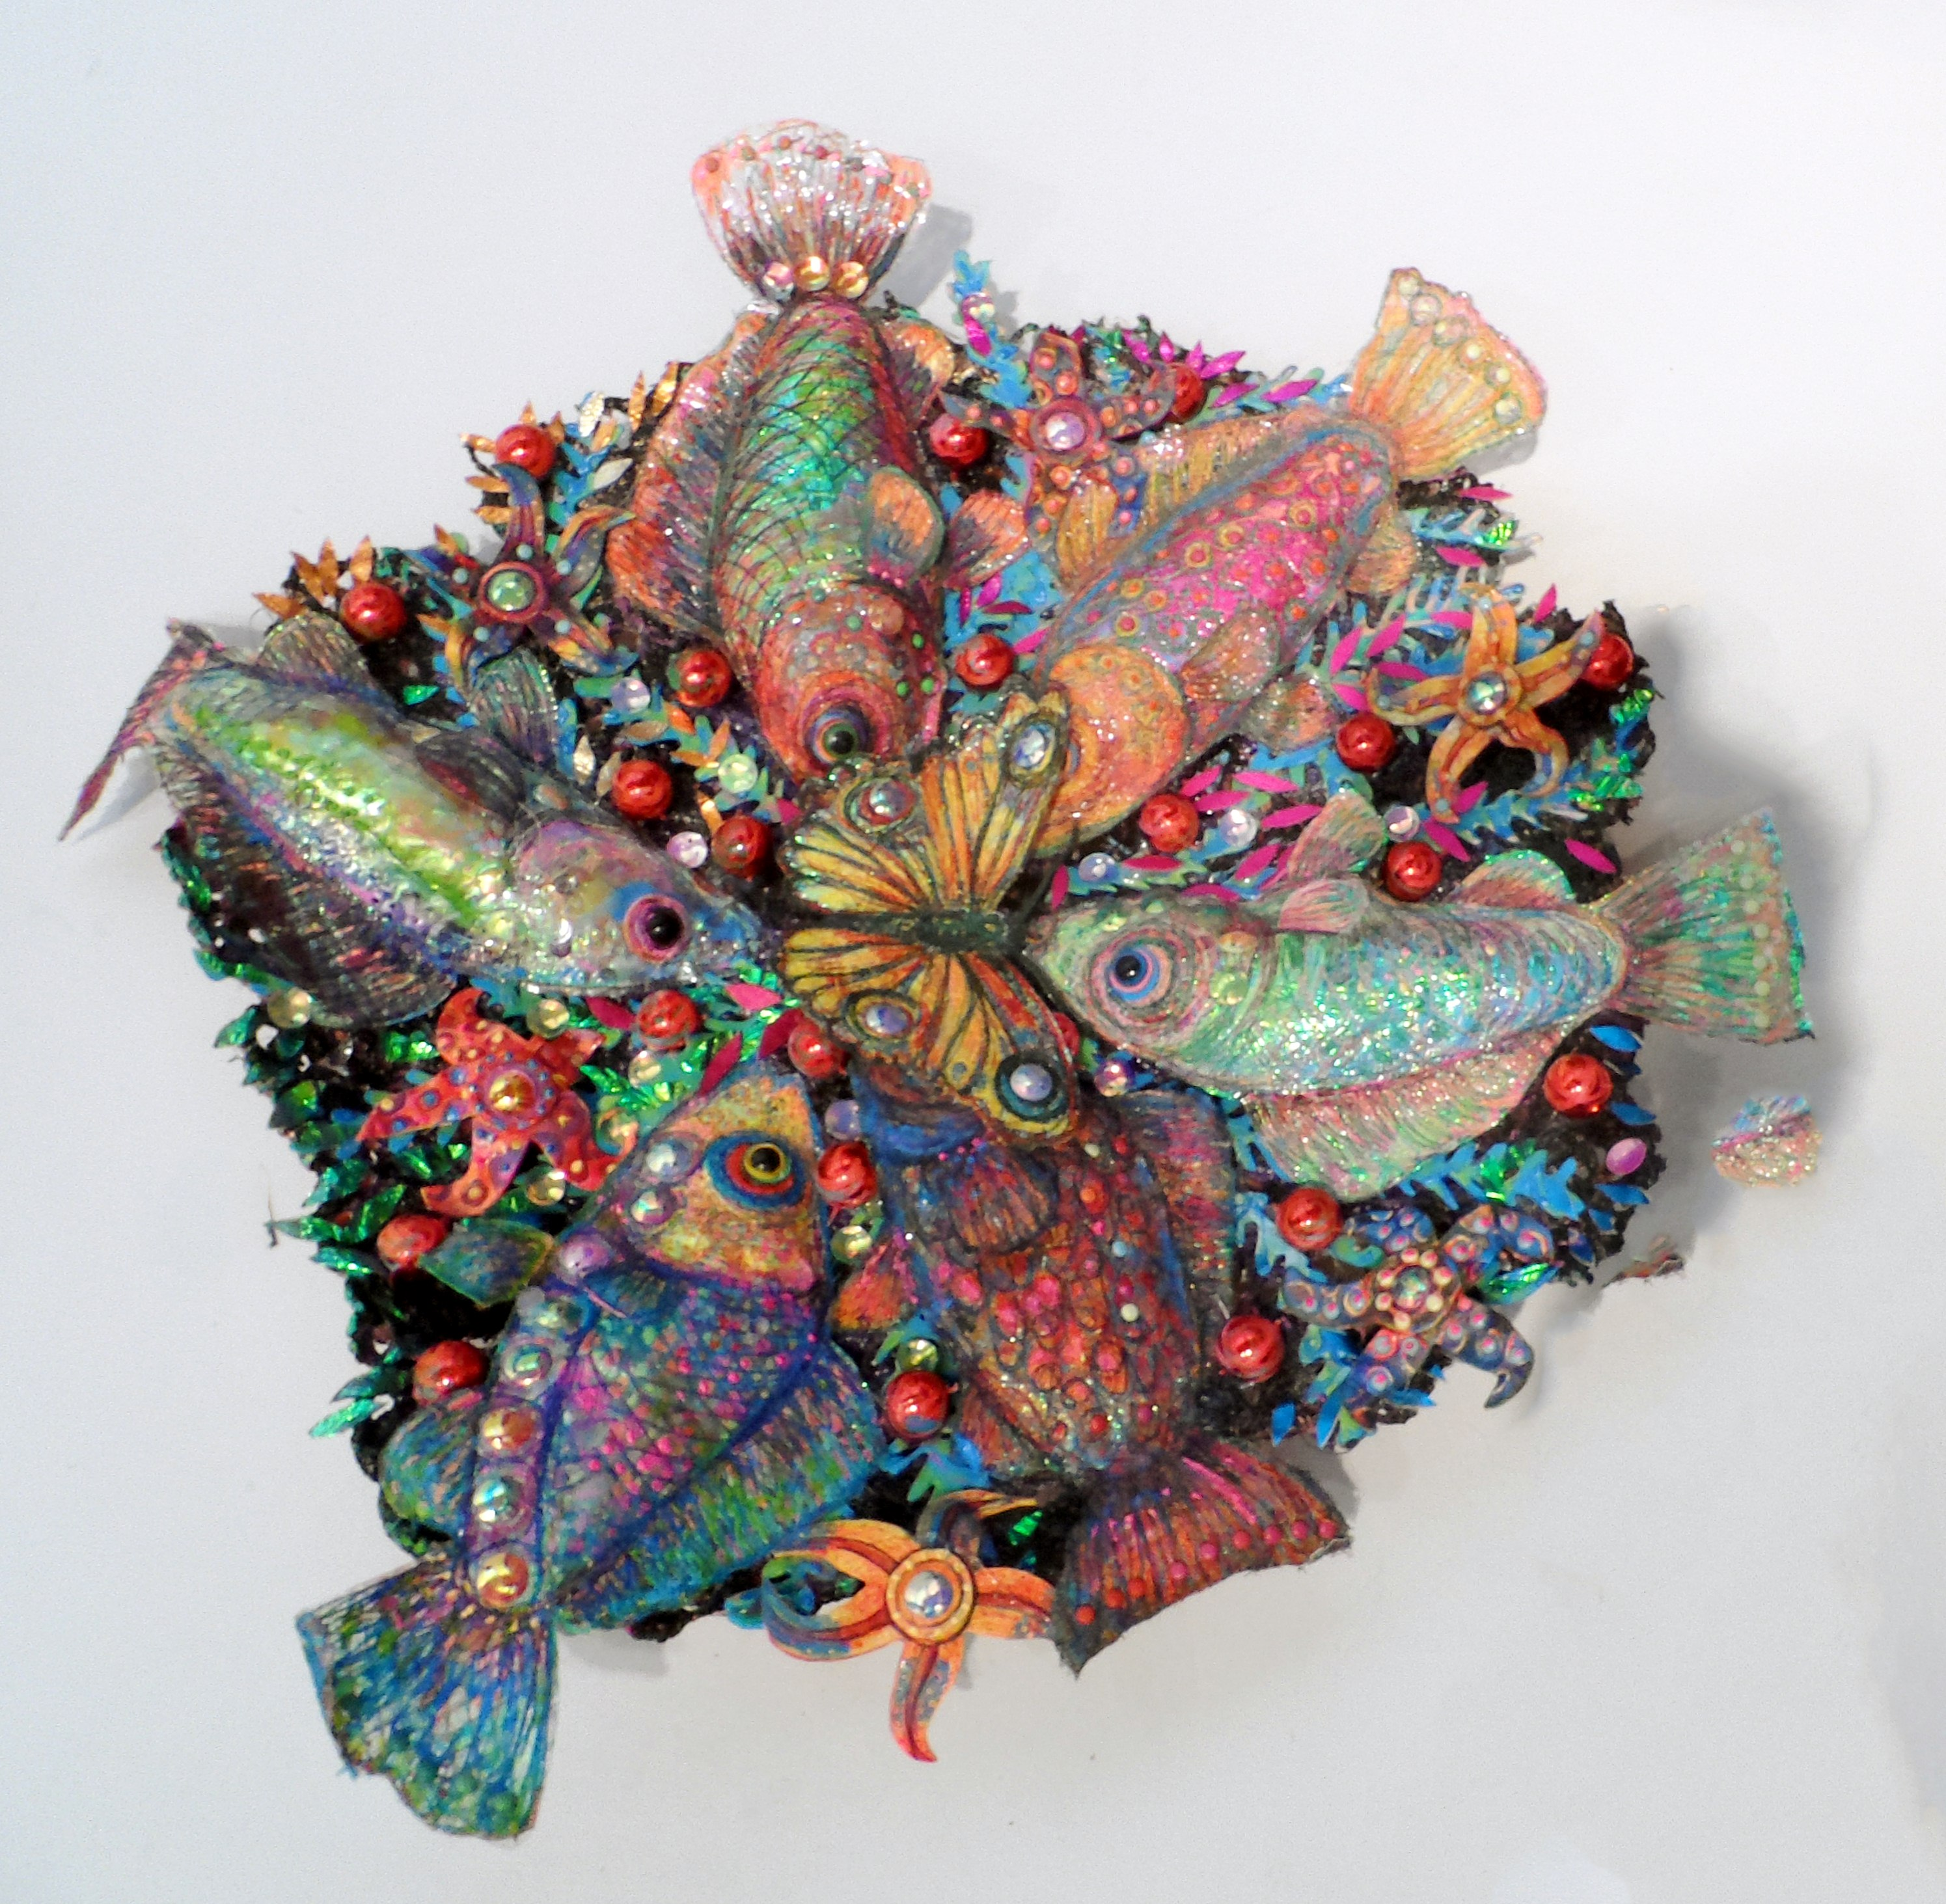 FISH DISH by Nikki Parmenter, Williamson Gallery, 2019